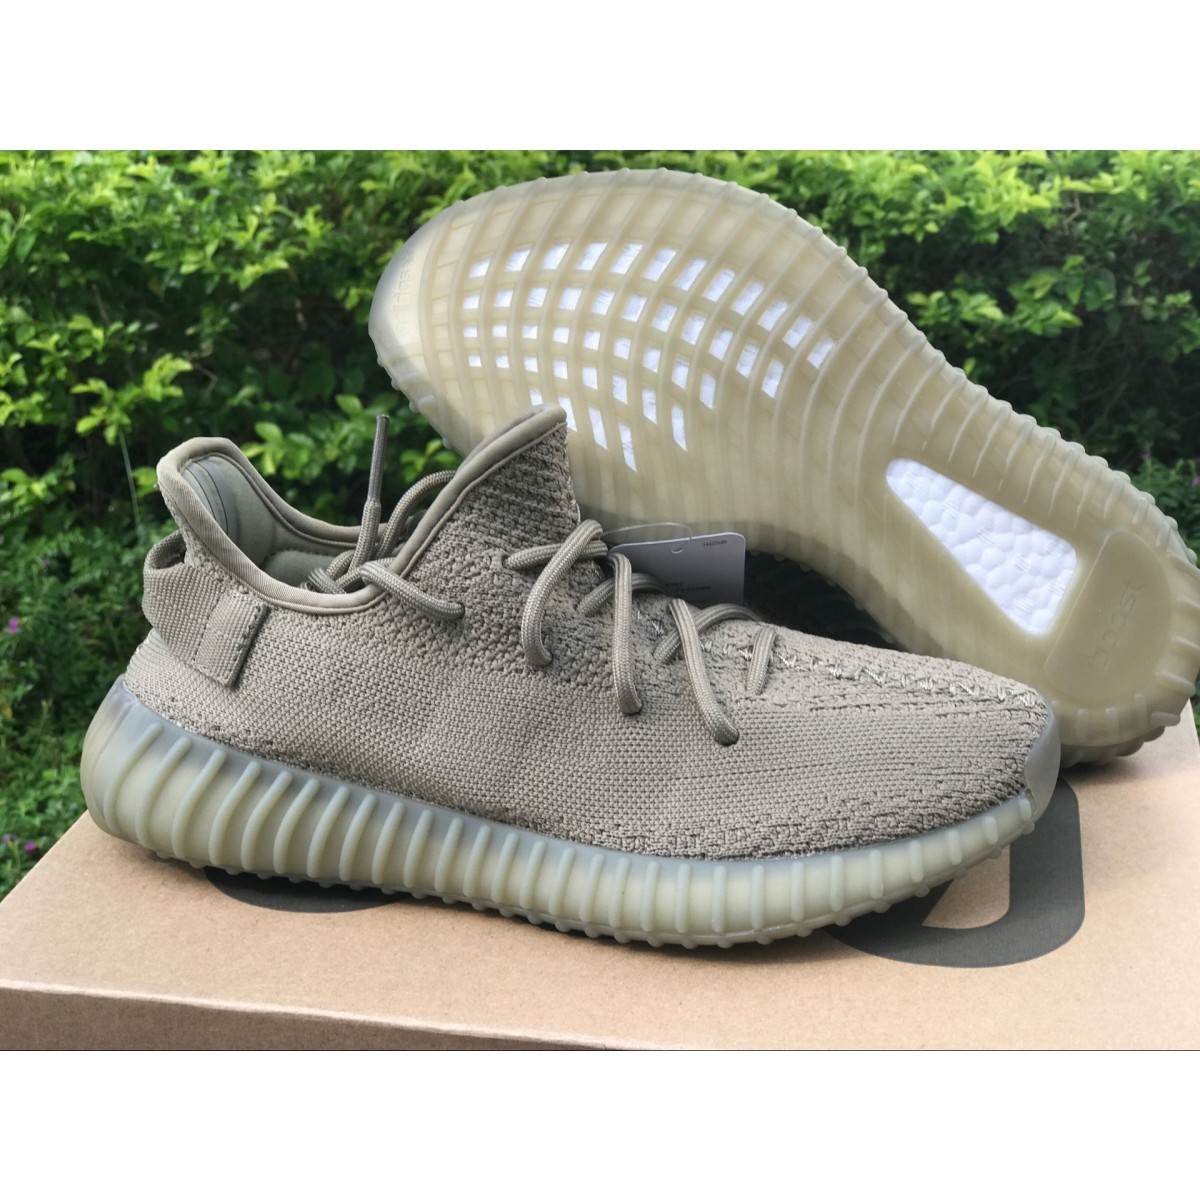 huge selection of 59146 c8704 Adidas YEEZY BOOST 350 V2 DARK GREEN Shoes